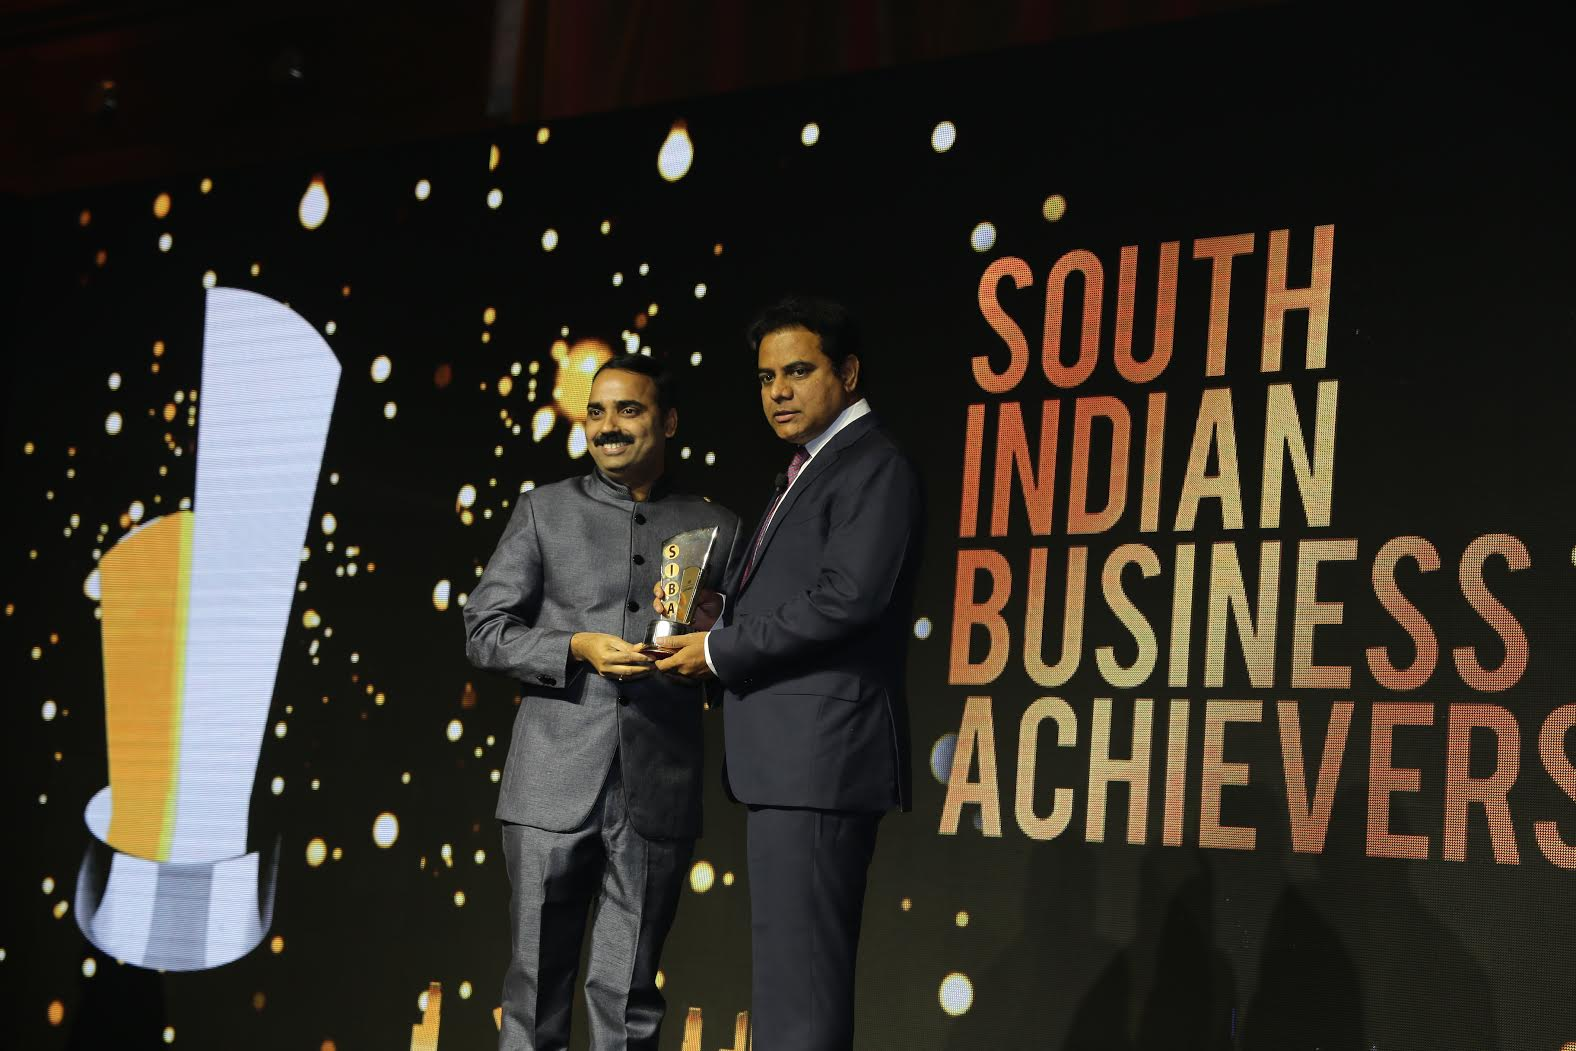 Telangana Minister KT Rama Rao in South India Business Achievers awards in singapore on 29.6.2016